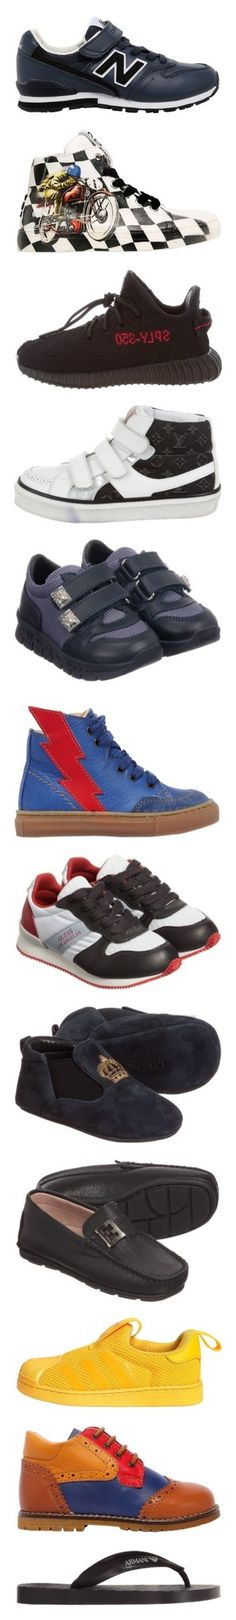 """""""Kids/baby shoes for boys"""" by julieselmer ❤ liked on Polyvore featuring navy, white, black, royal blue, yellow, multicolor, green, red, shoes and sneakers"""